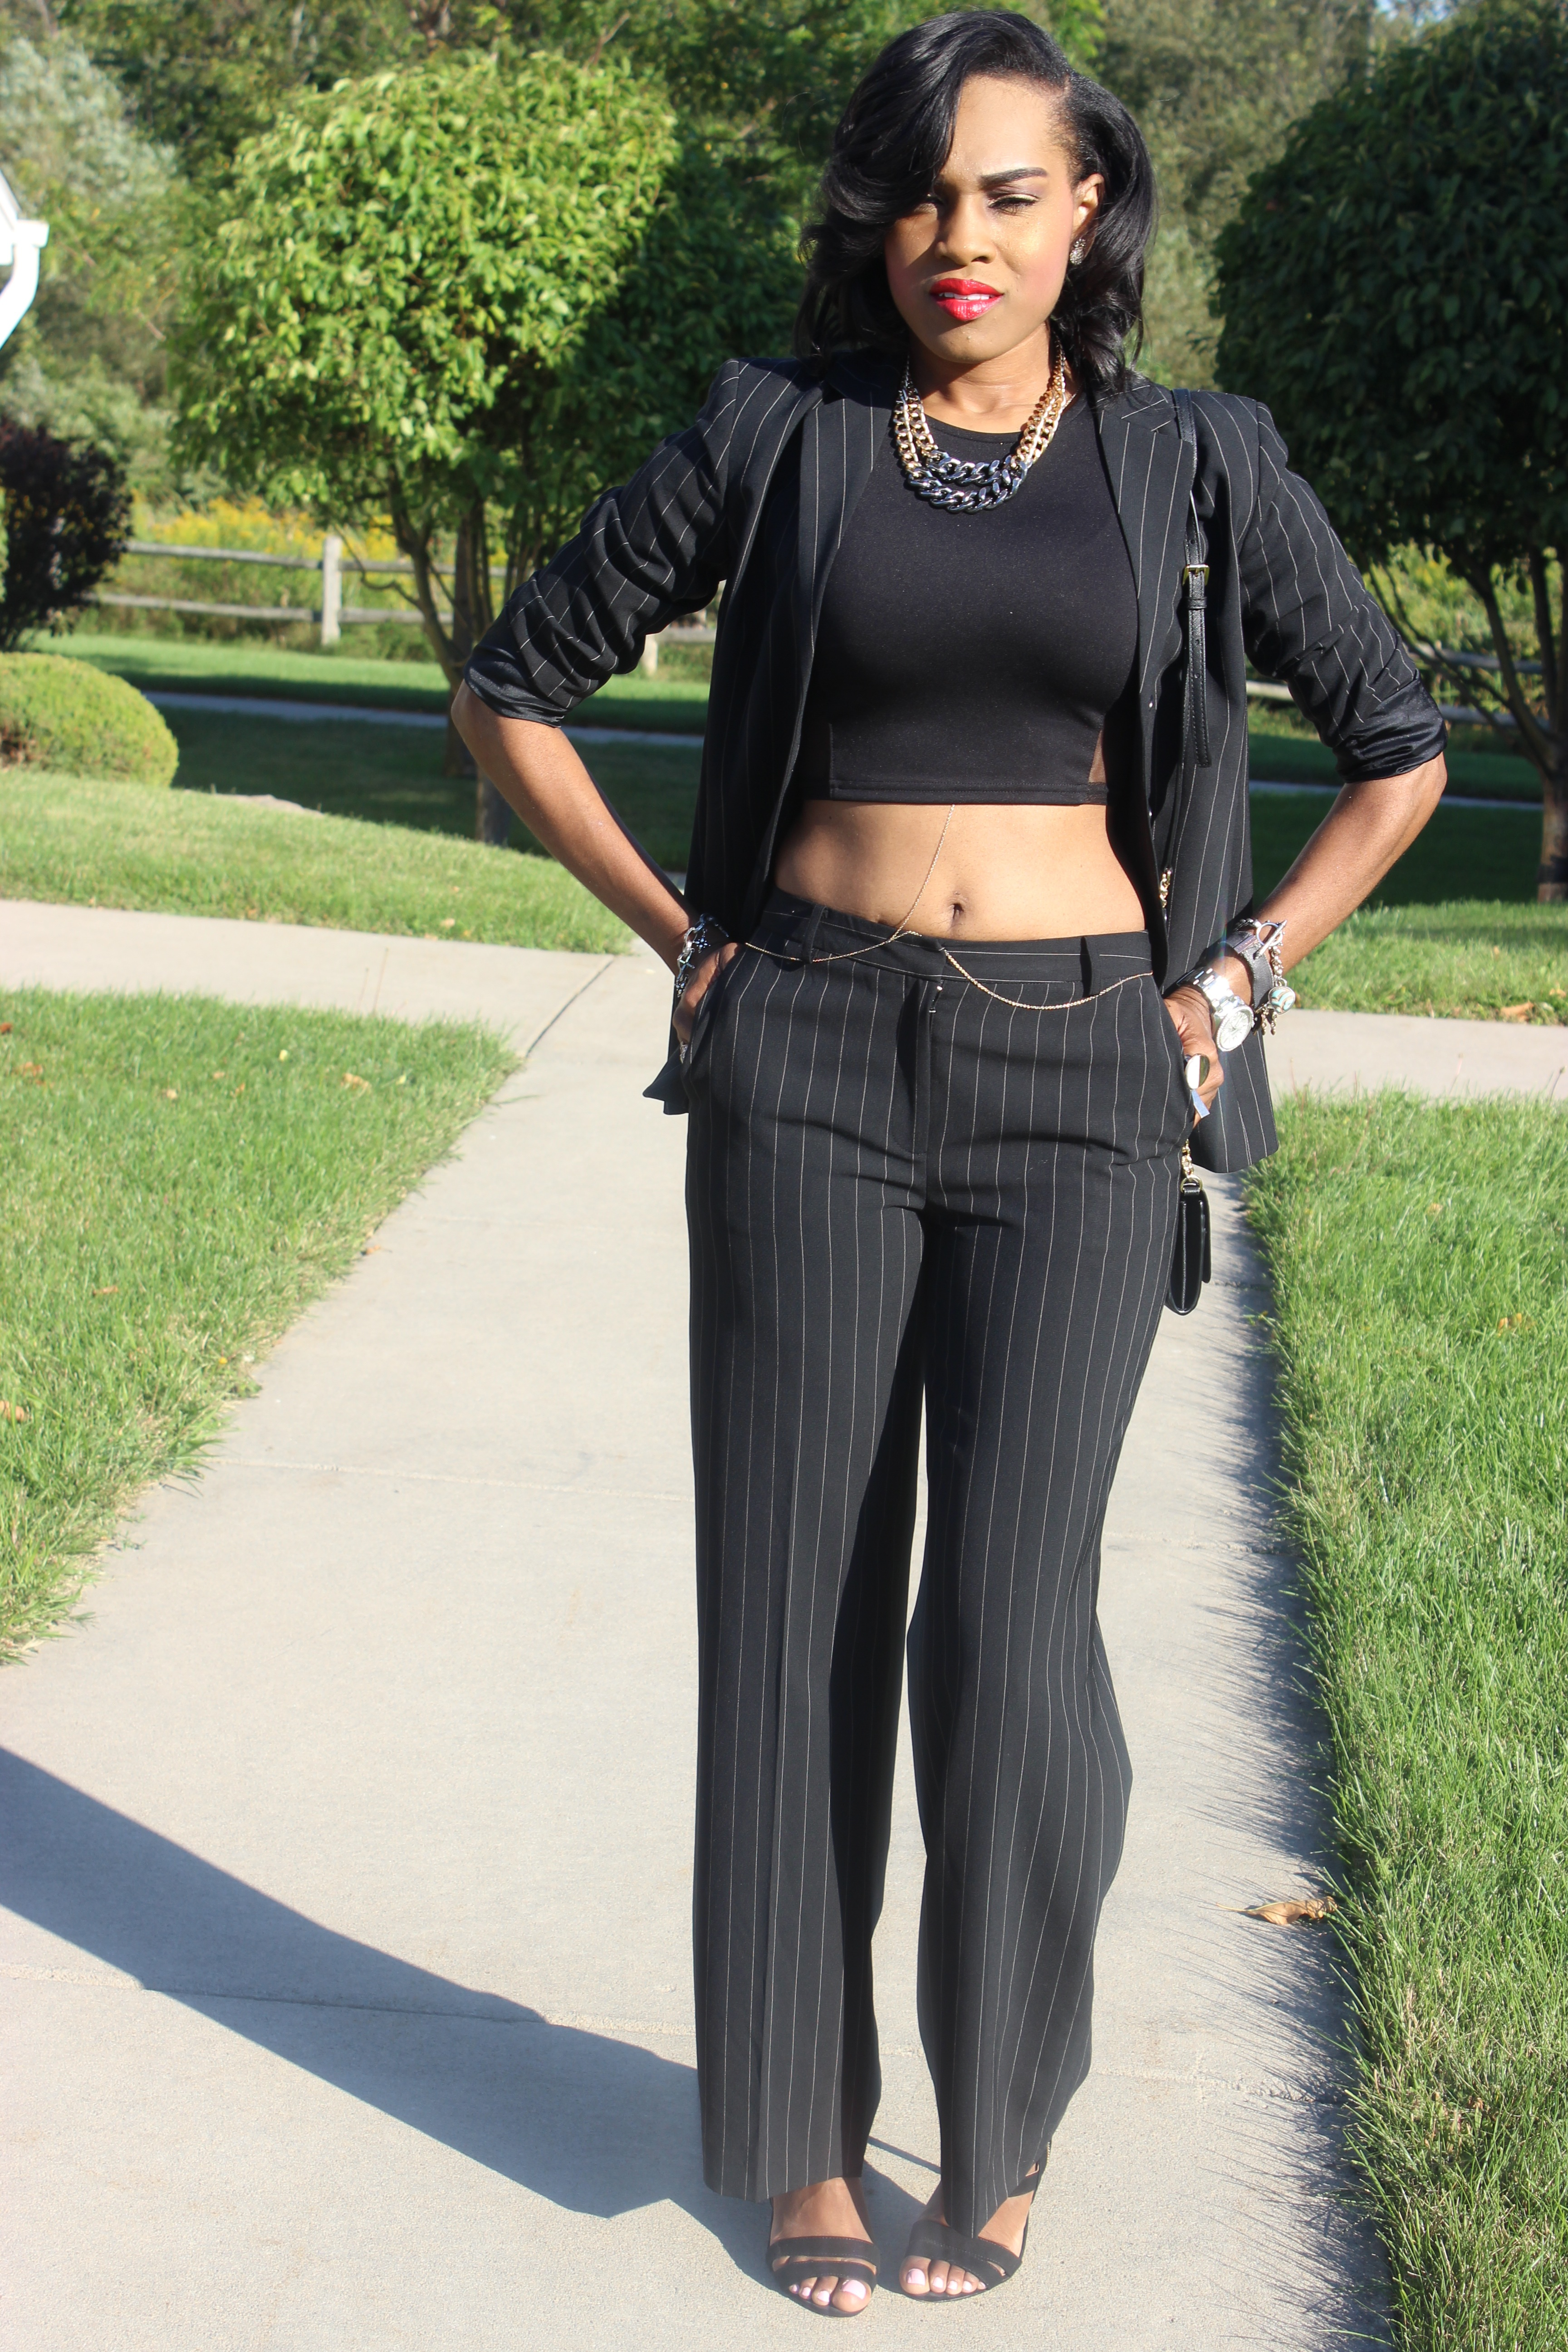 Style-Files-With-Pretty-Price-How-to-wear-a-Pinstripe-Suit-Black-white-casual-coners-thrifted-pant-suit-black-mesh-forever-21-mesh-crop-top-Just-Fab-Florence-Heels-2